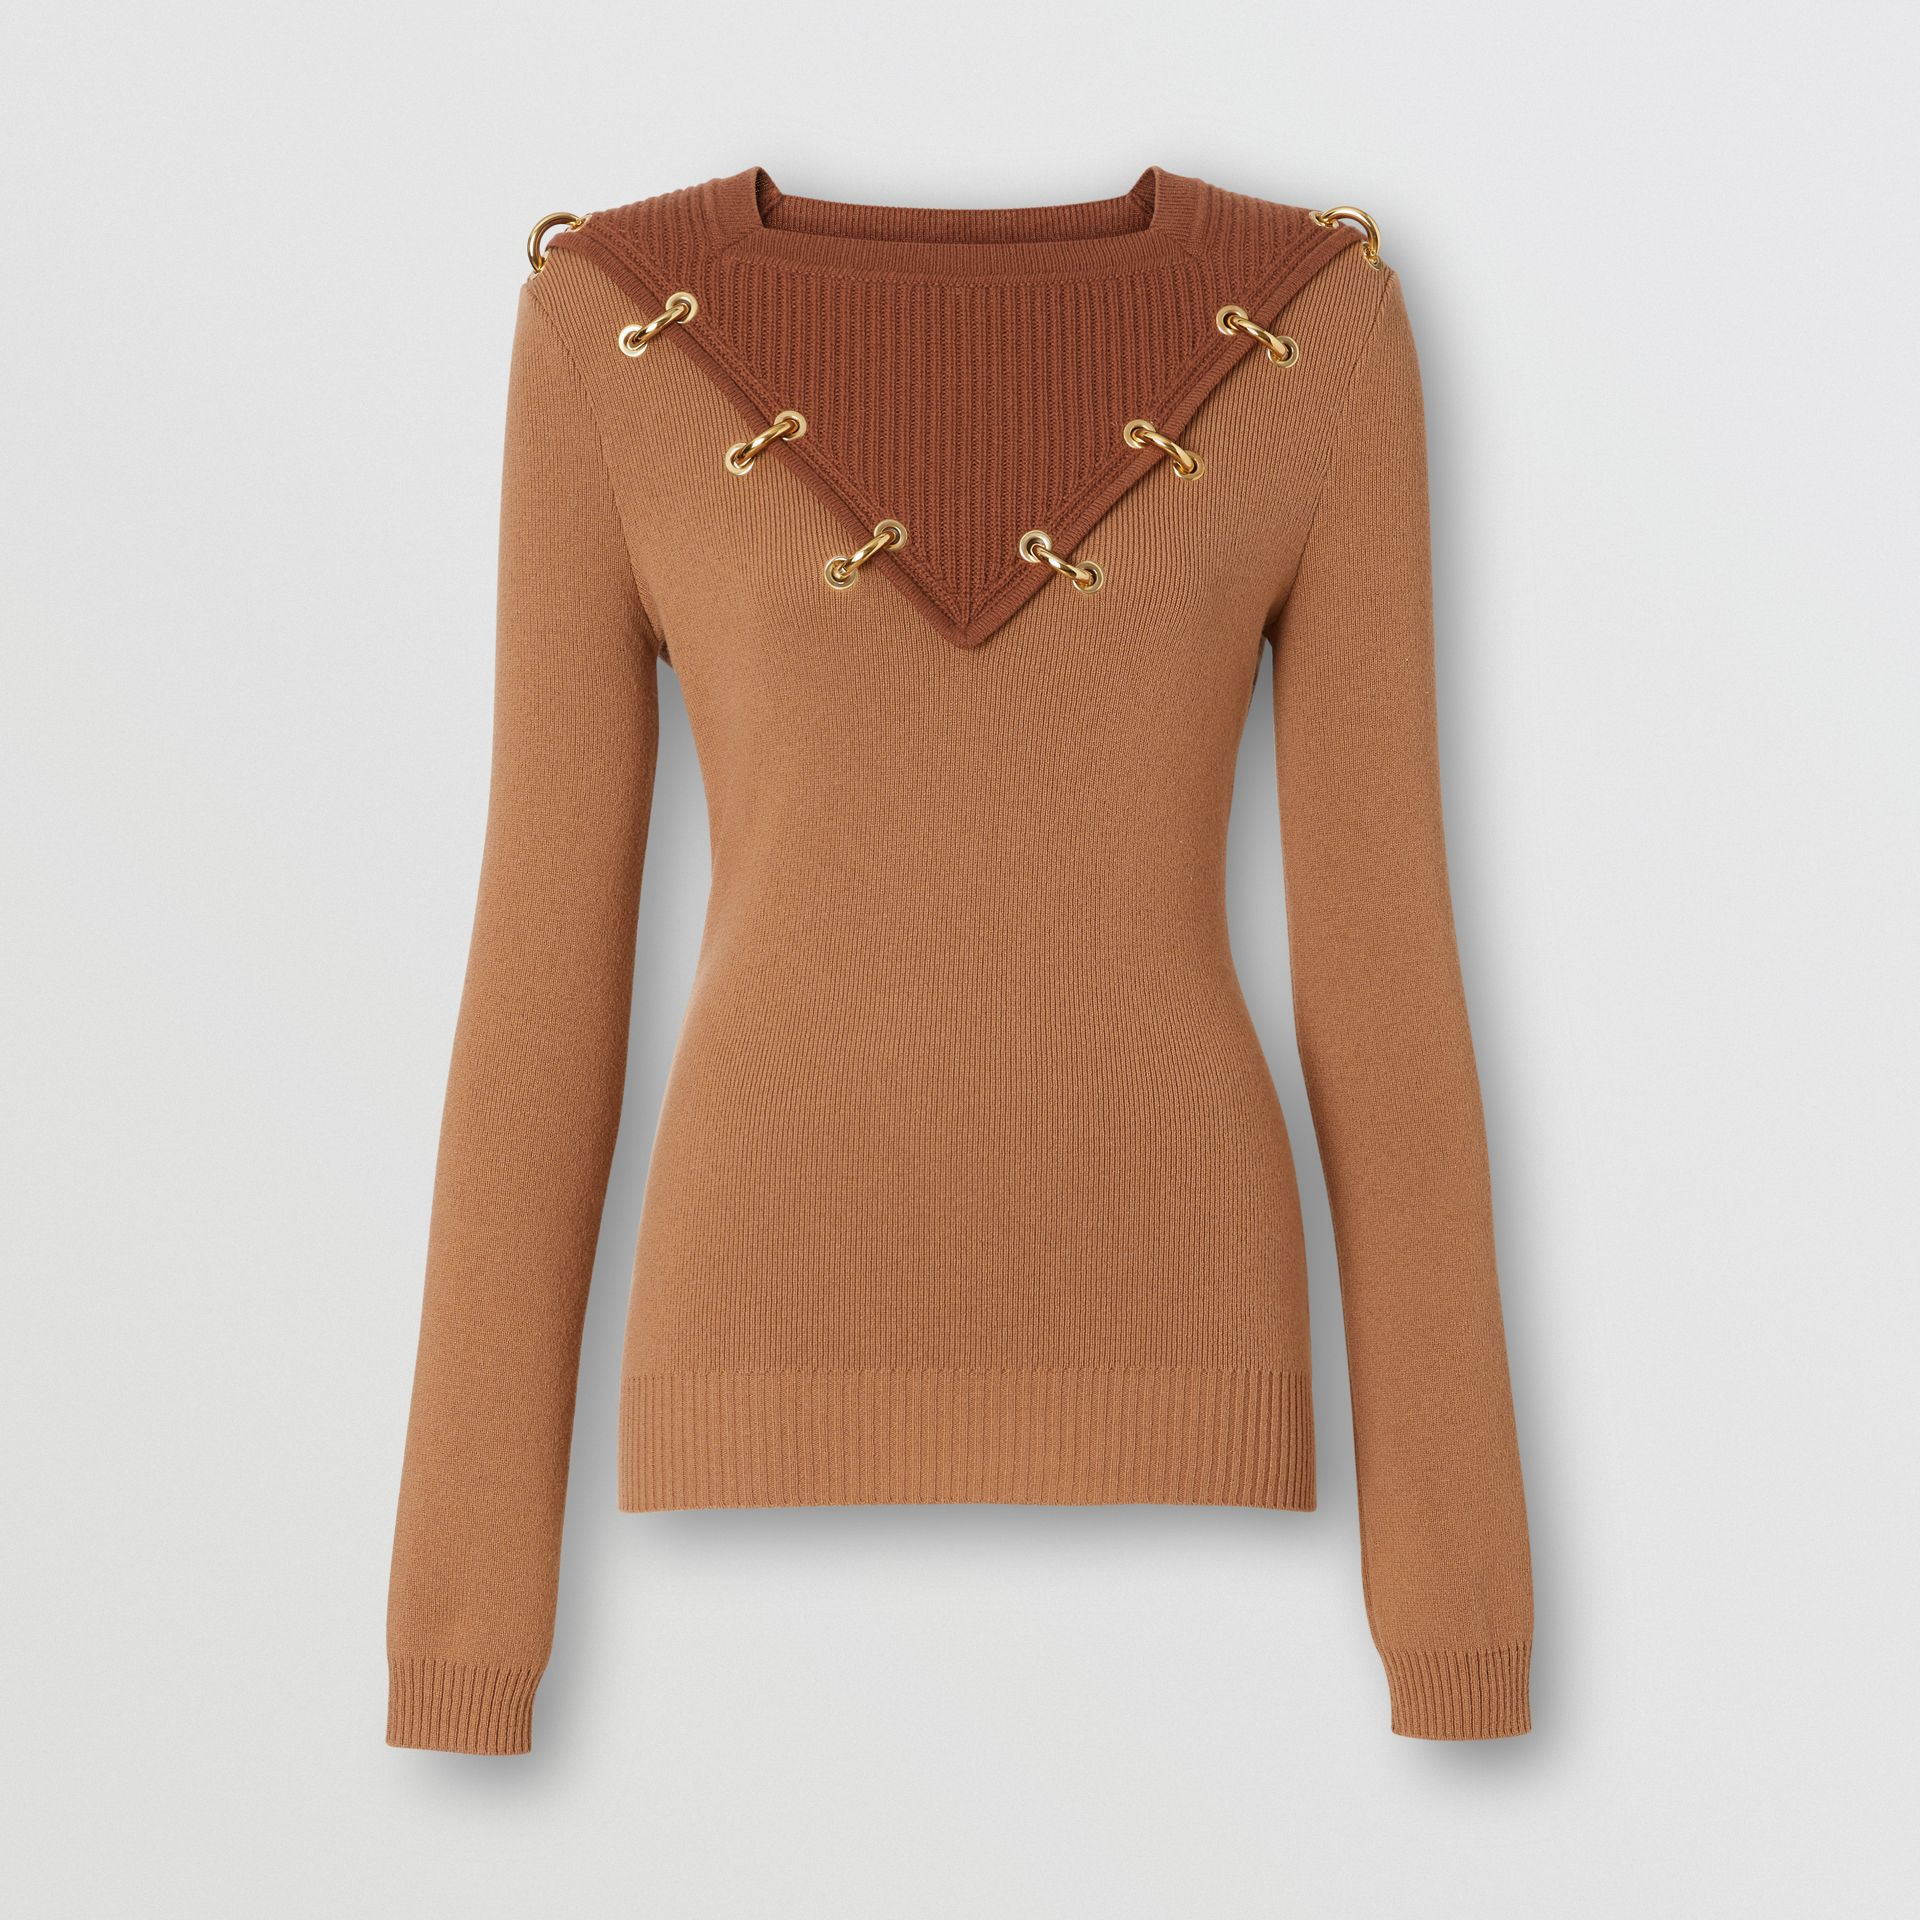 Ring-pierced Two-tone Wool Cashmere Sweater in Warm Camel - Women | Burberry - gallery image 3